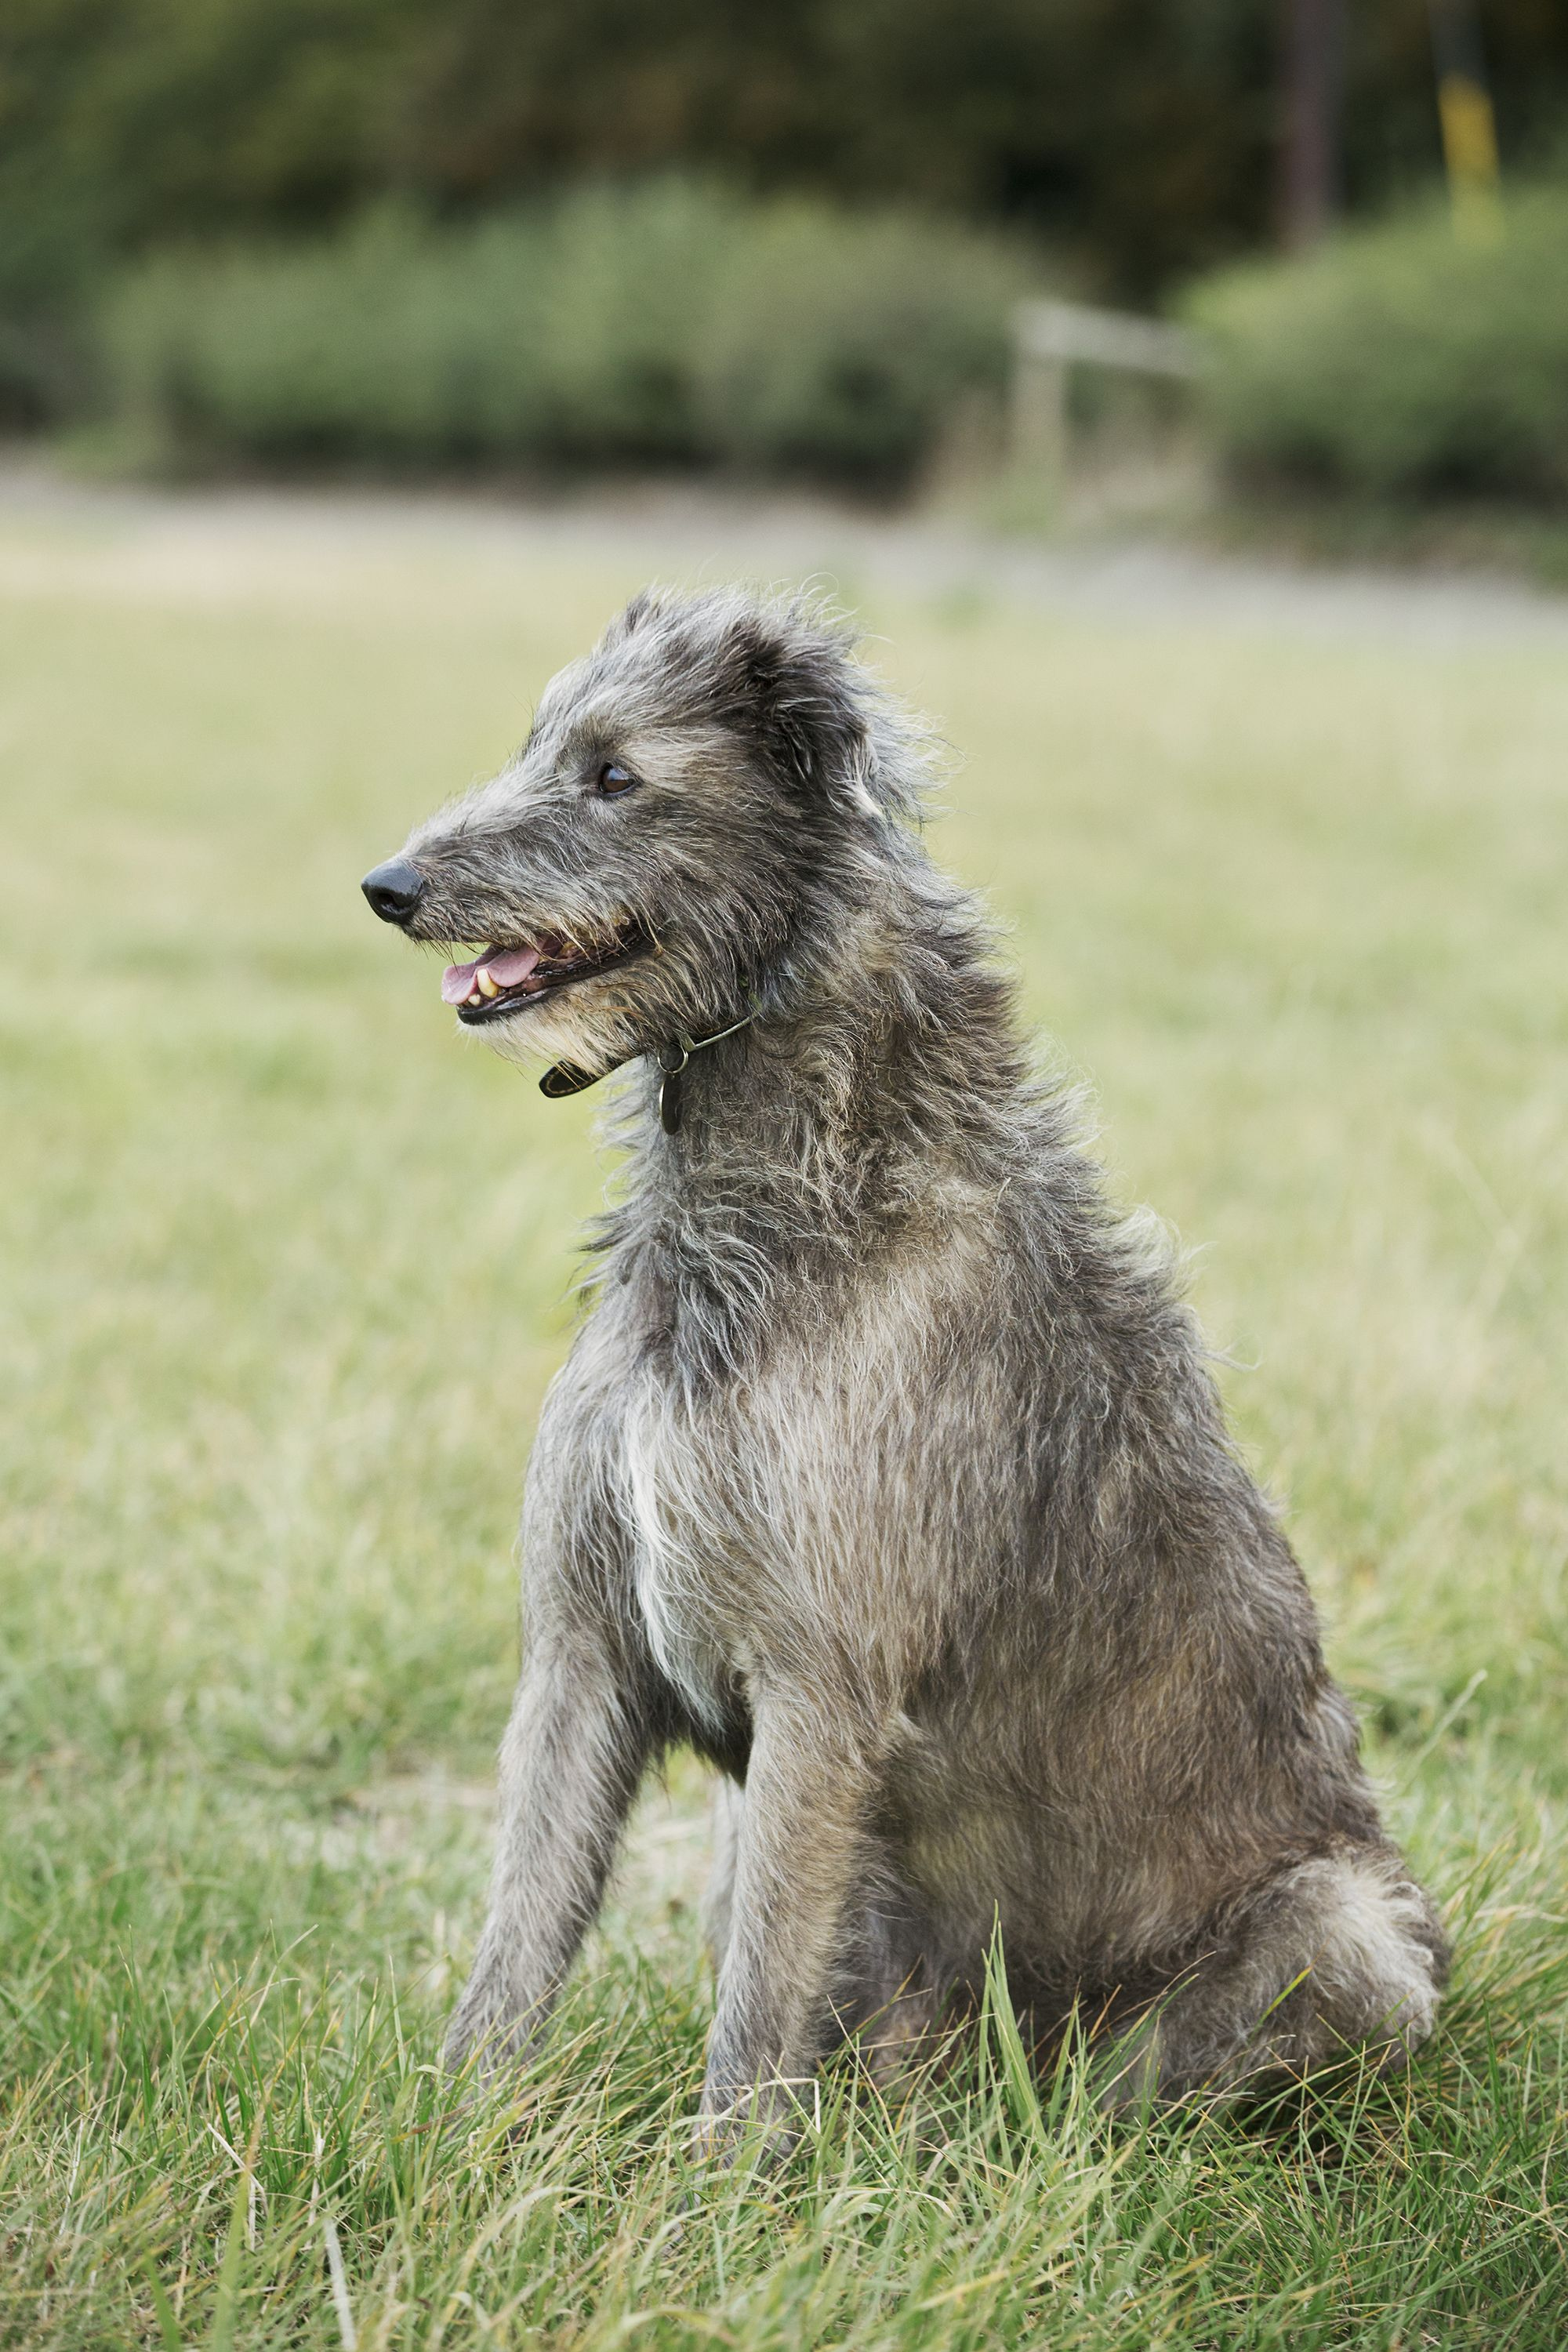 15 Quiet Dog Breeds - Dogs That Don't Bark